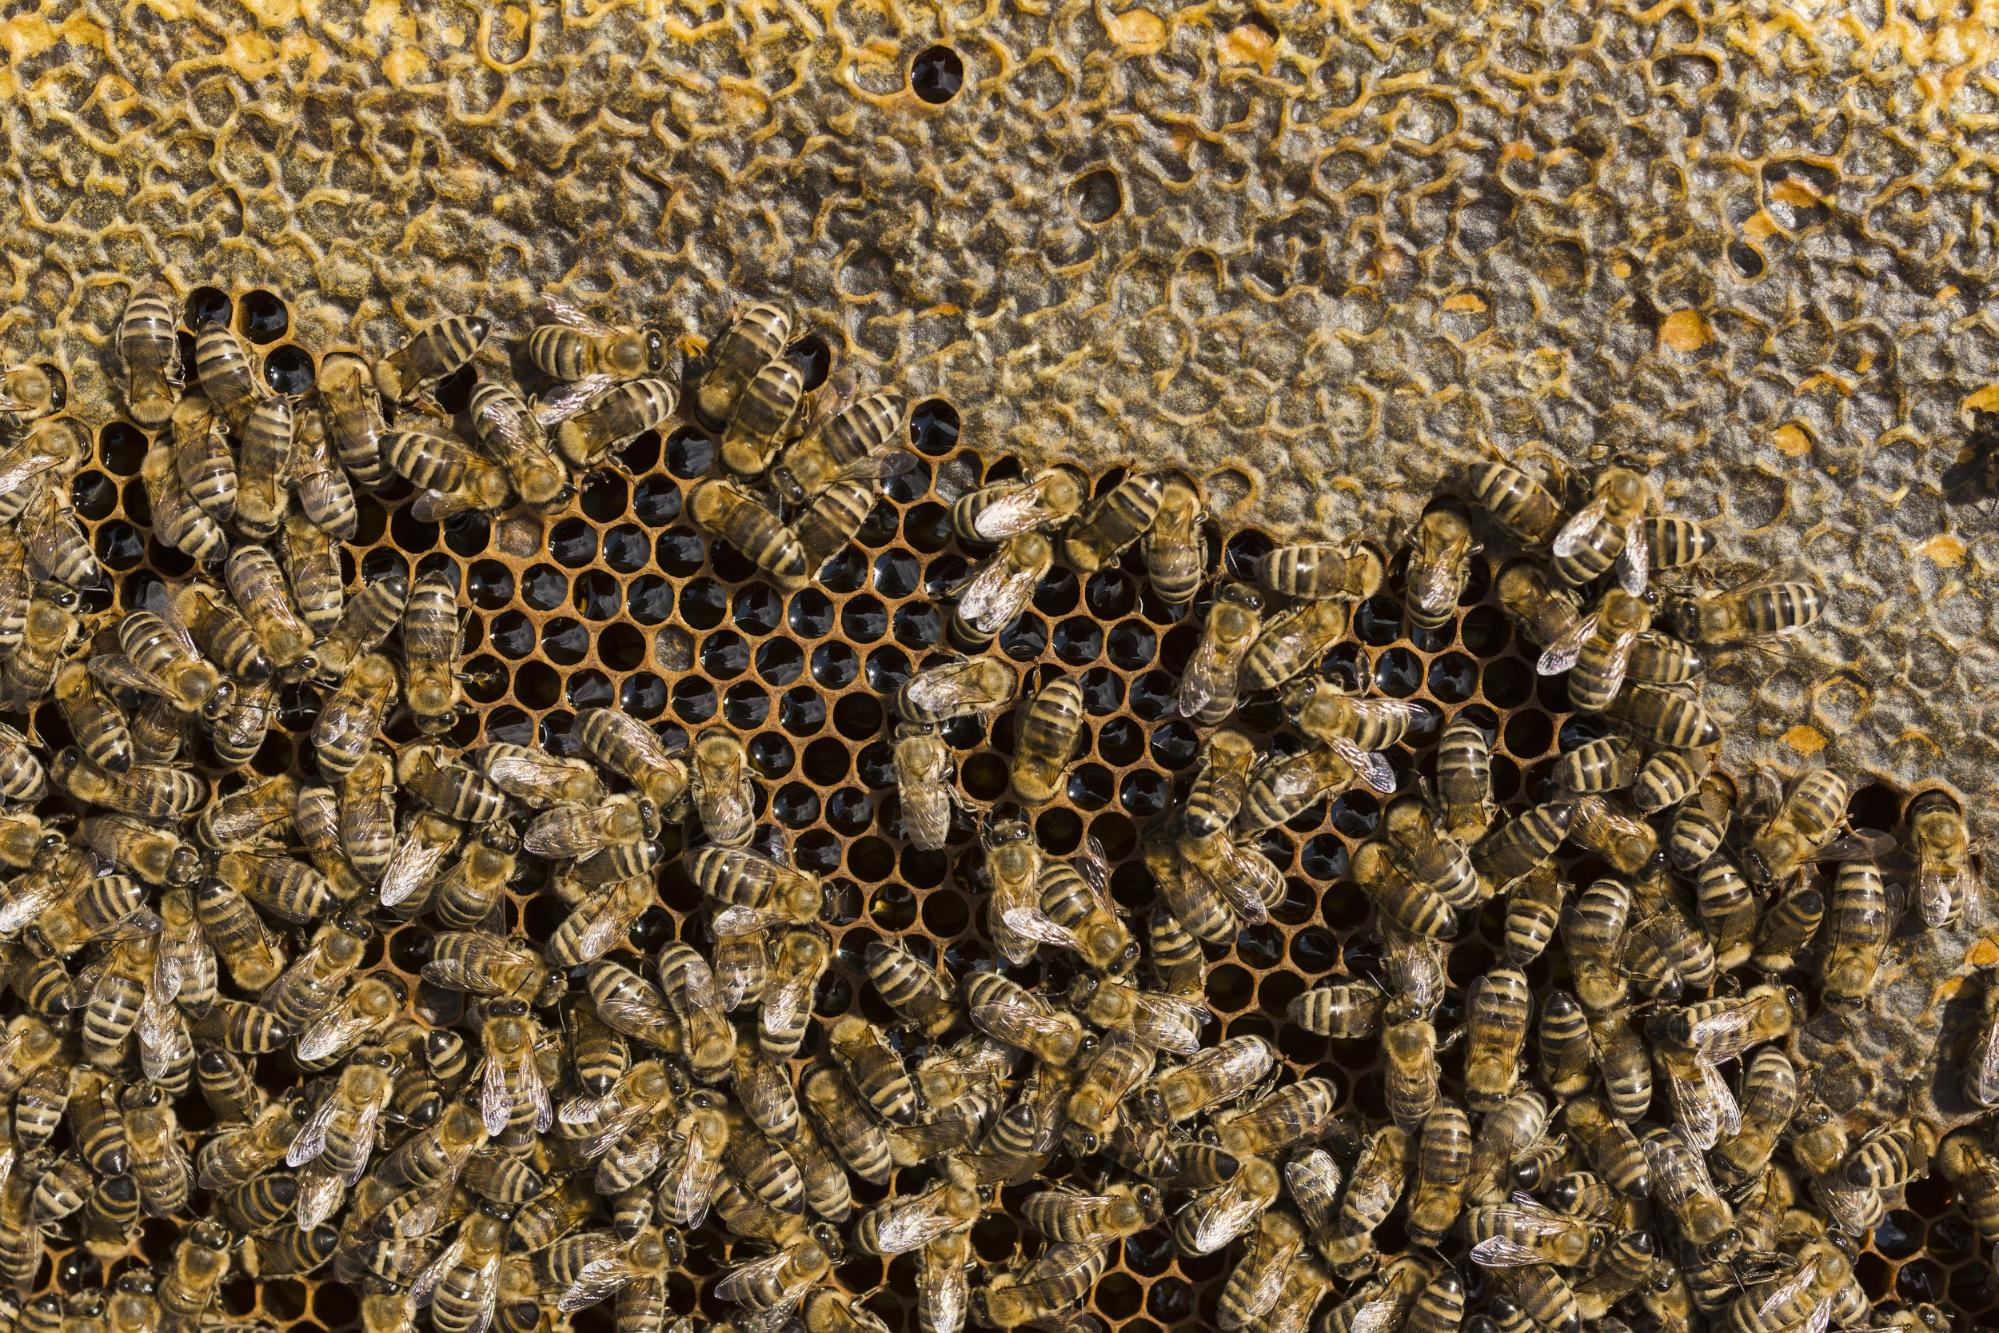 Honey bees filling their hive with honey and nectar. When bees decide to build their nest inside a chimney, it could cause problems for the homeowner.